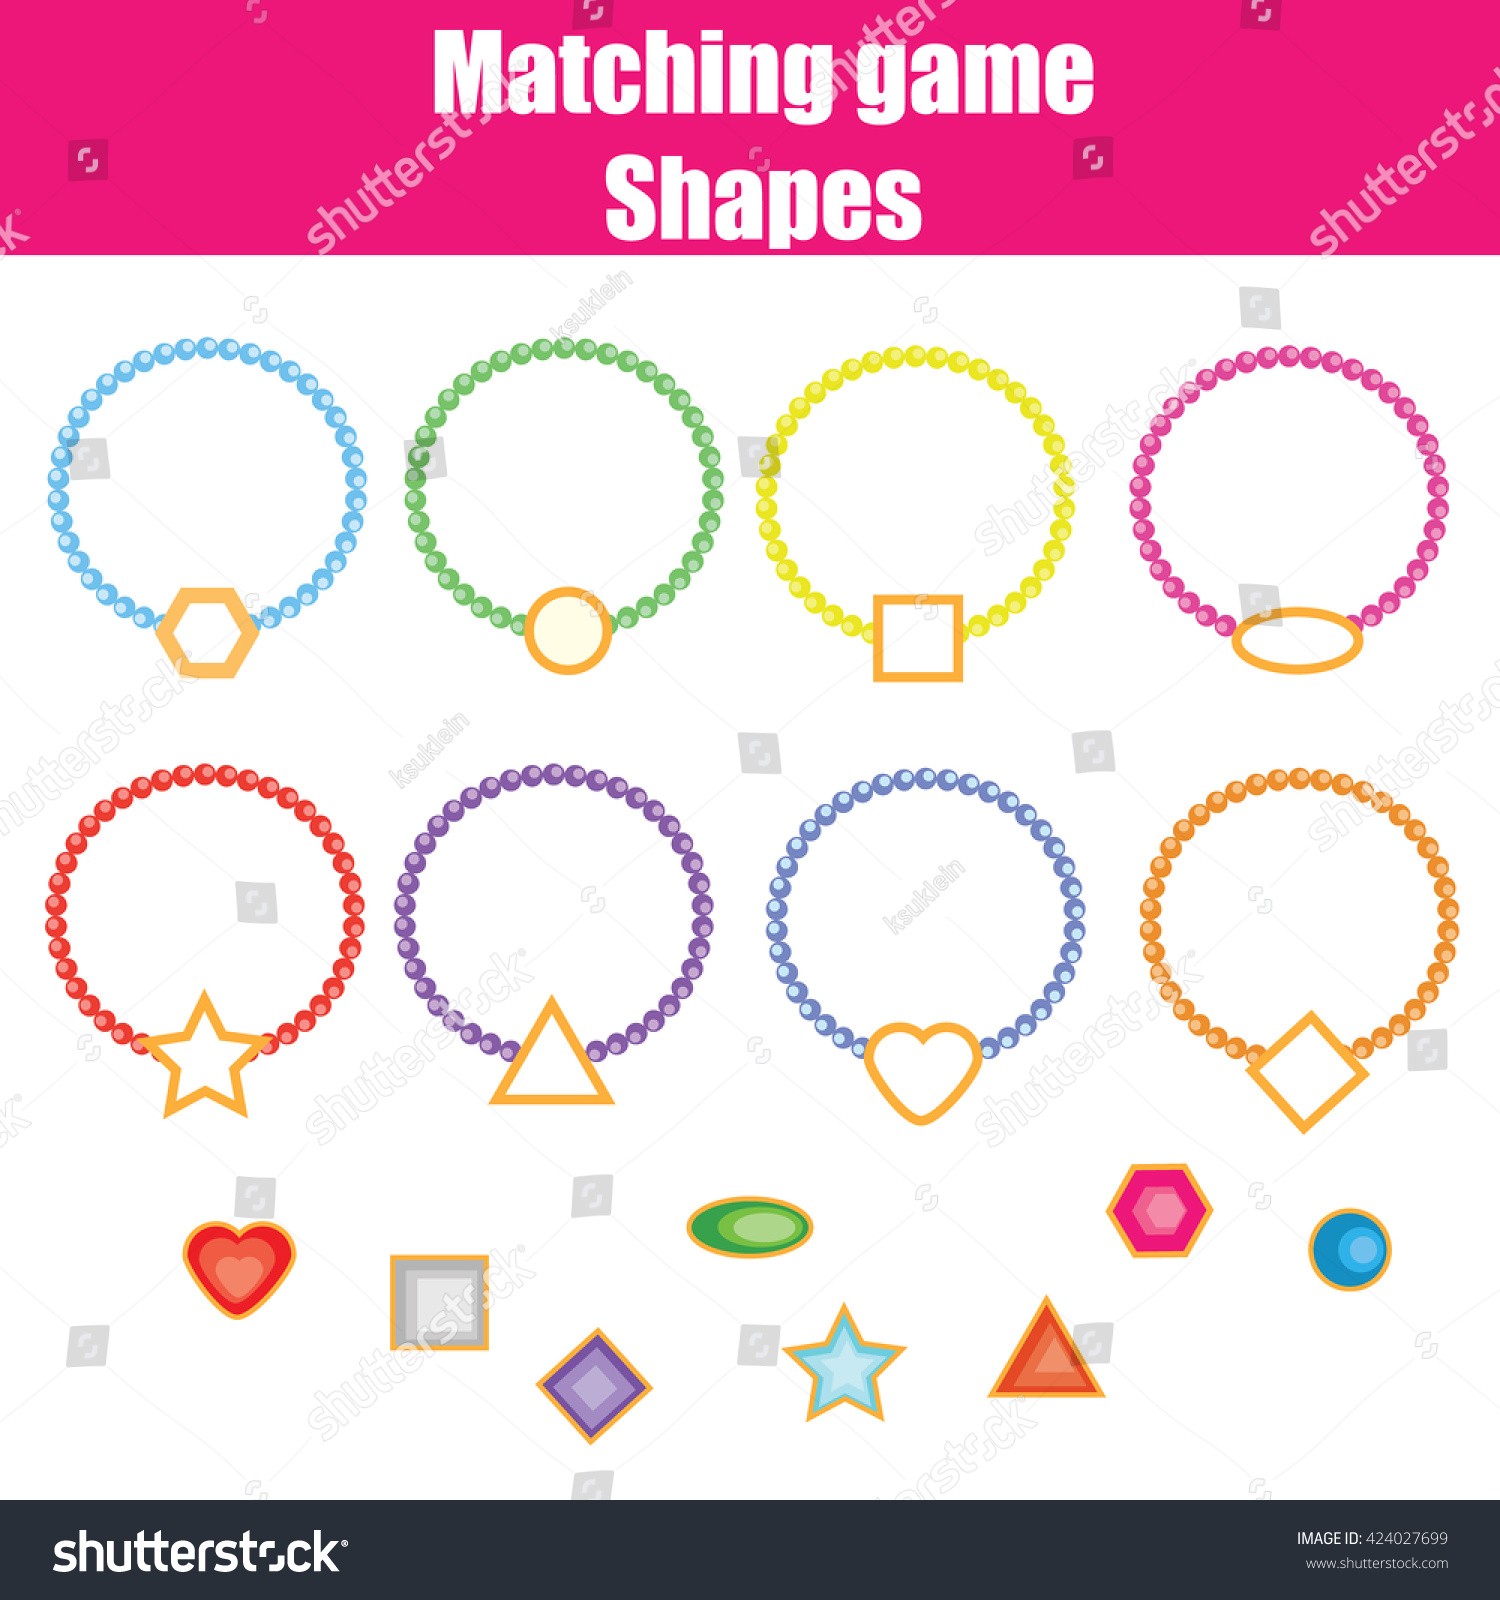 Matching Game Match The Shapes Task Learning Geometry